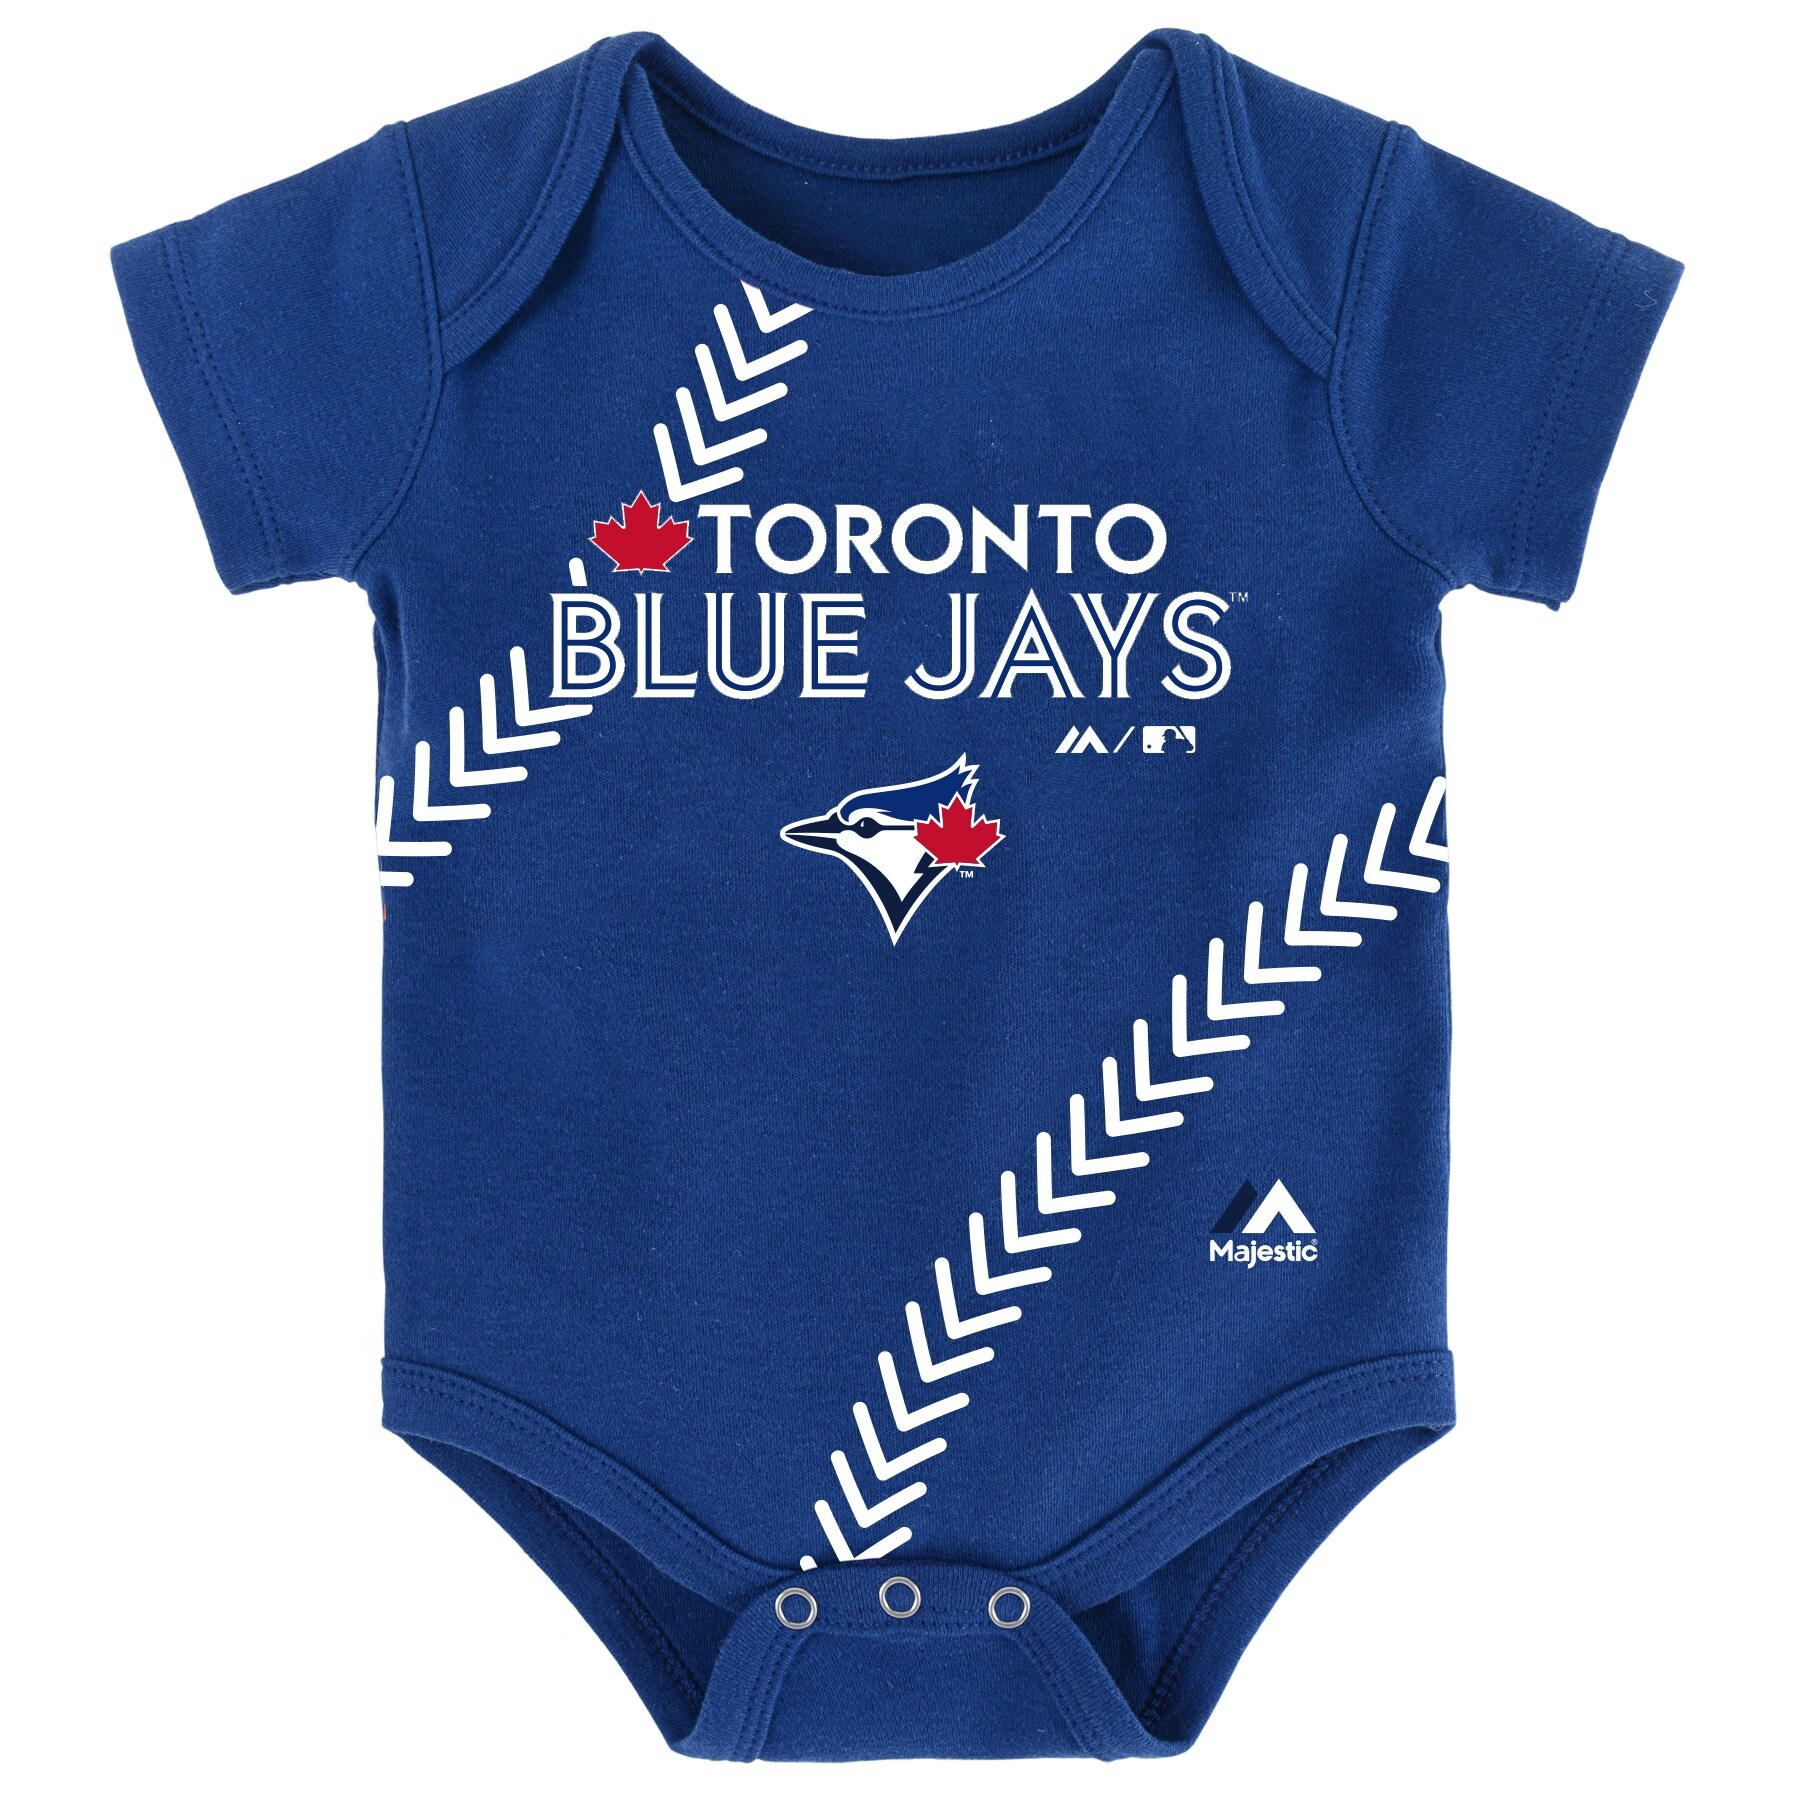 Toronto Blue Jays Majestic Newborn & Infant Fan-Atic Baseball Bodysuit - Royal